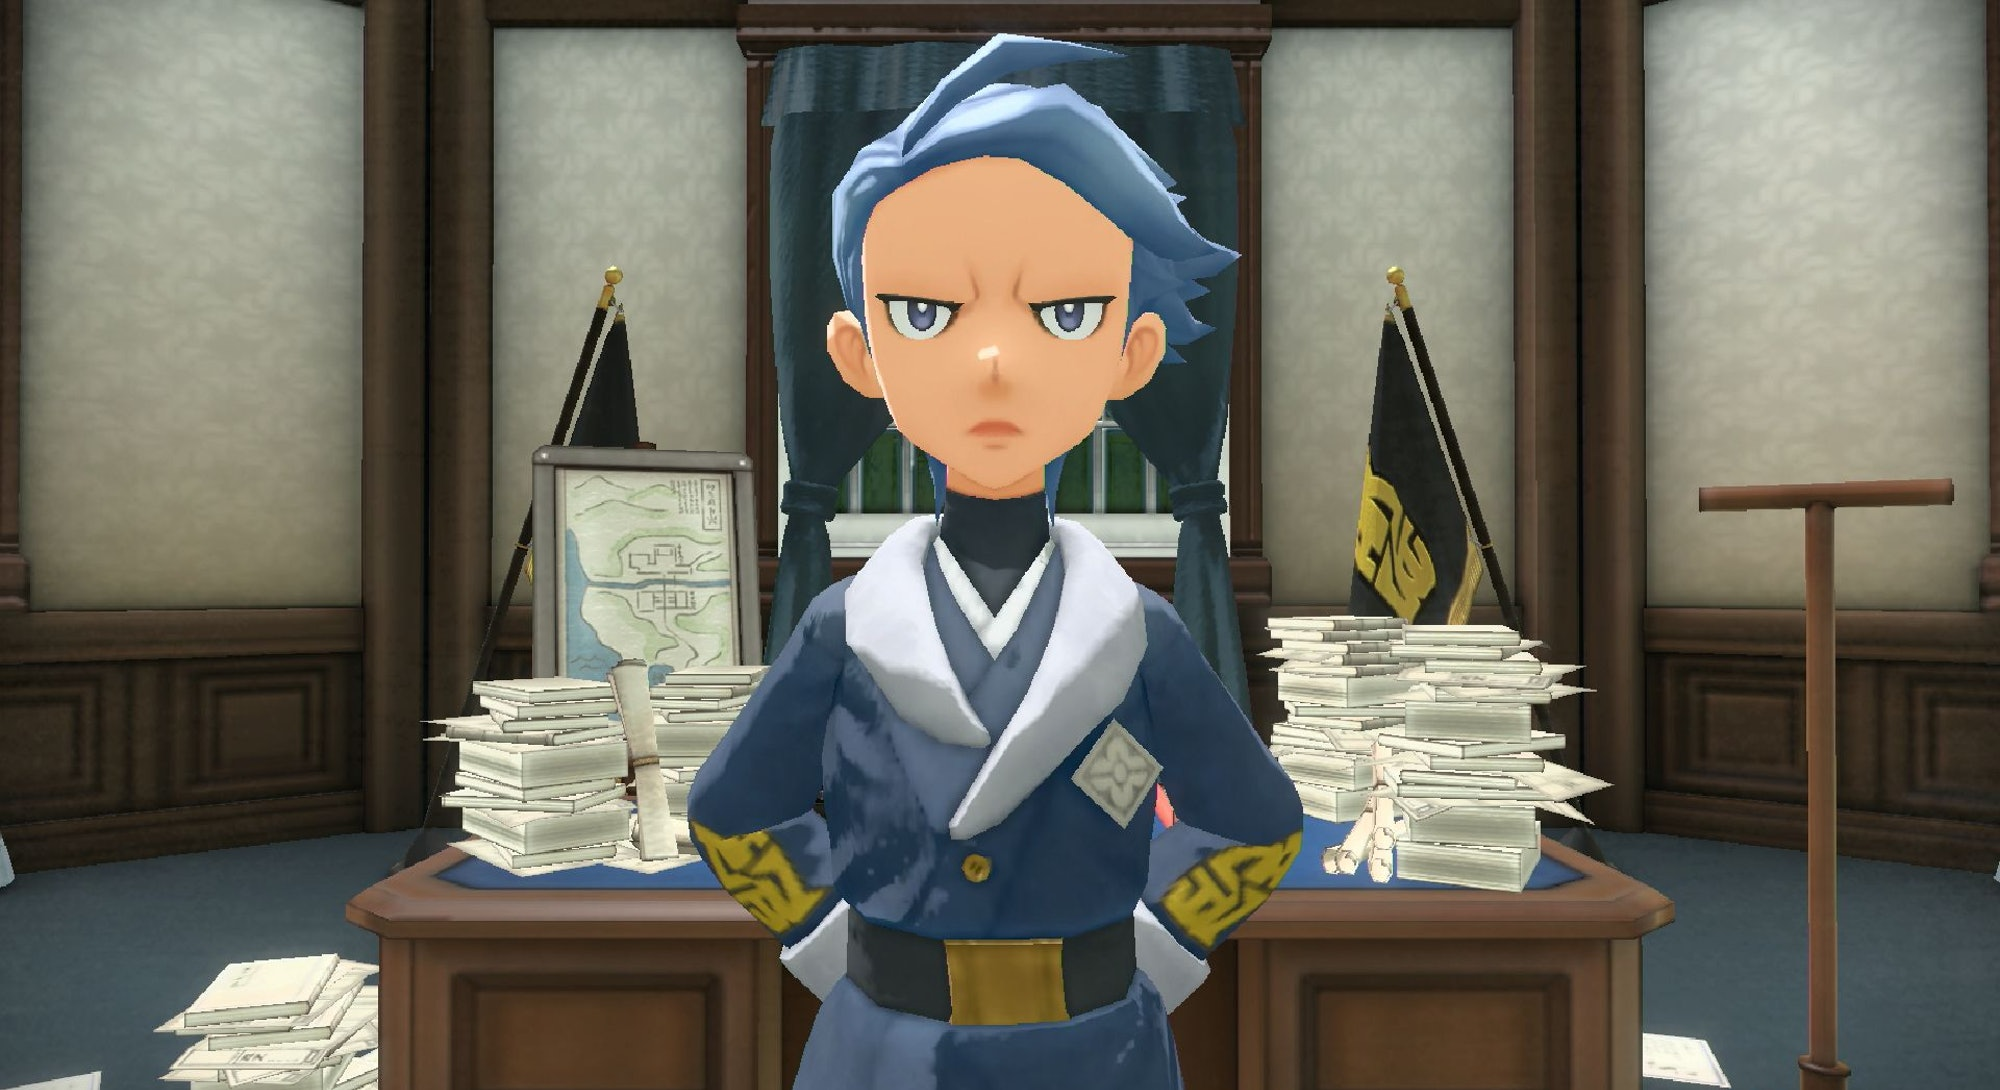 Cyllene is a character players will work with closely during this adventure